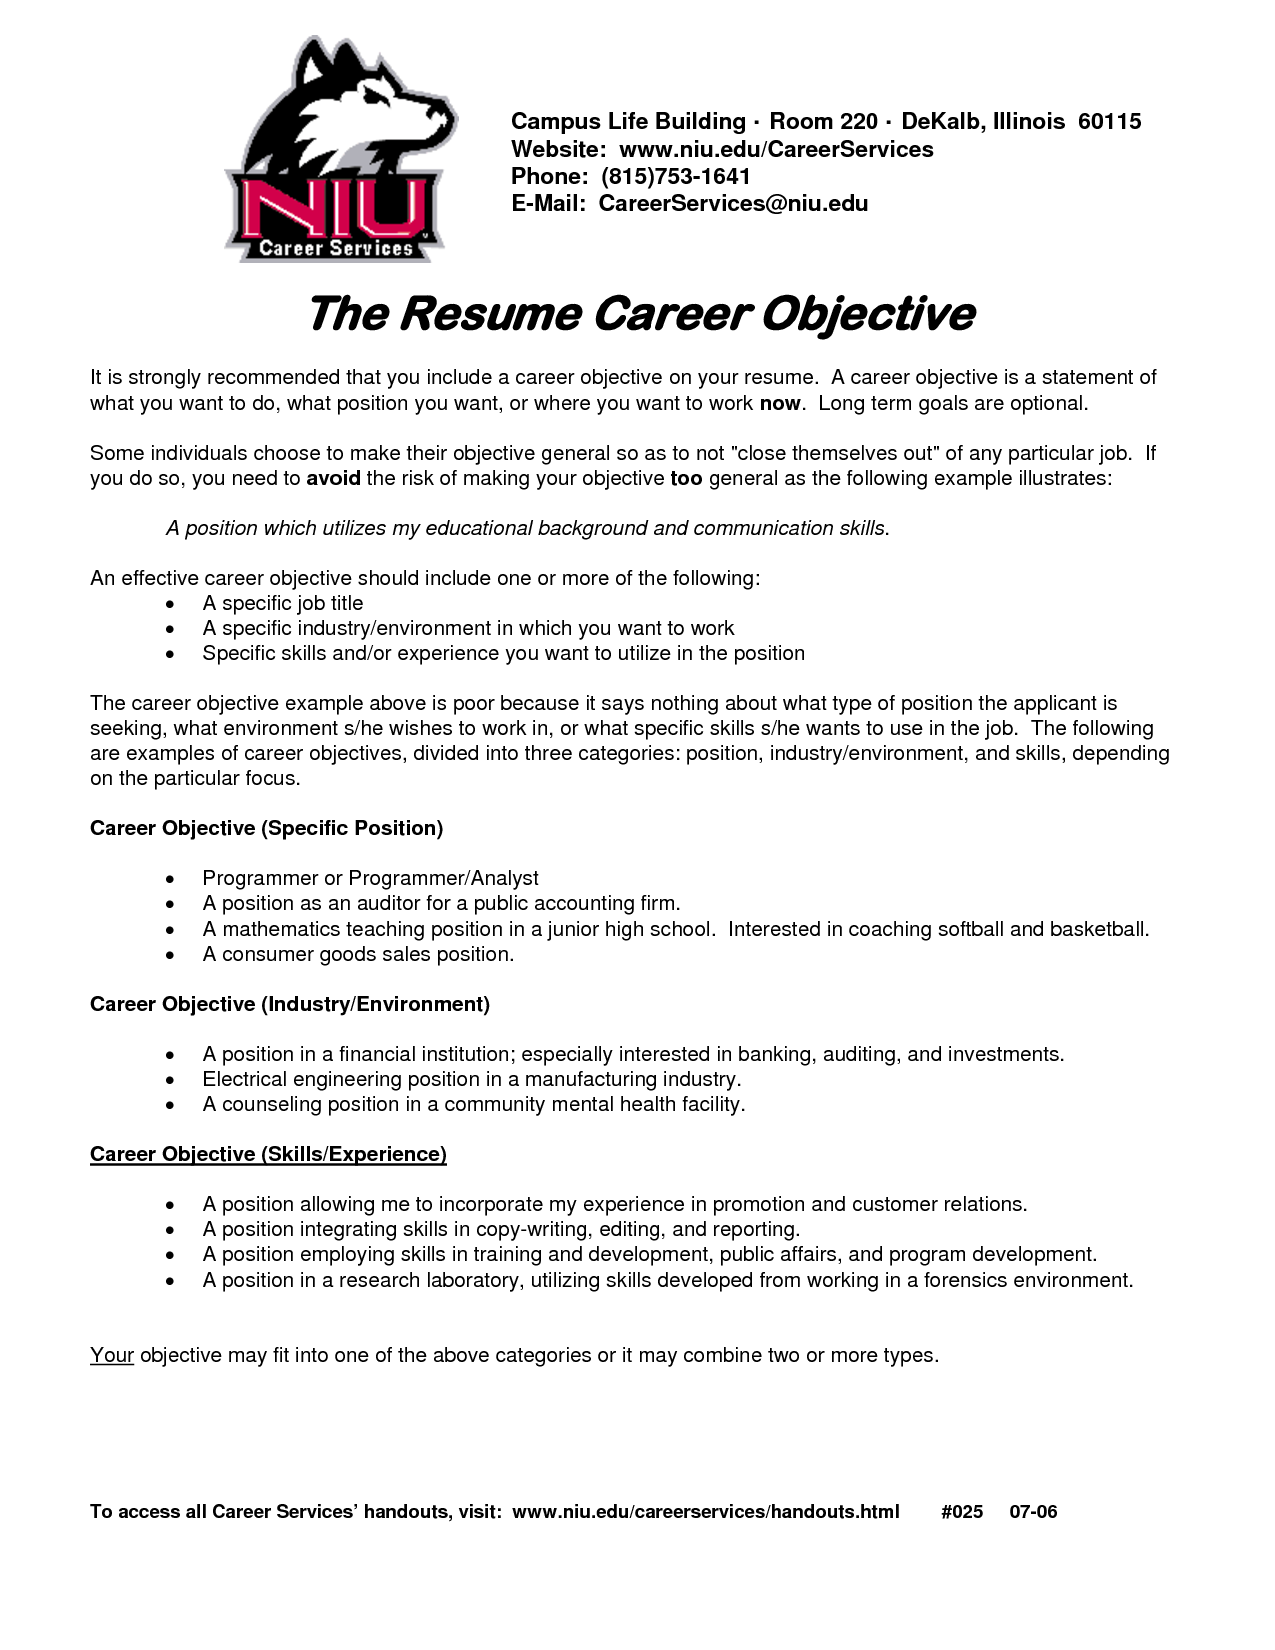 objectives resume